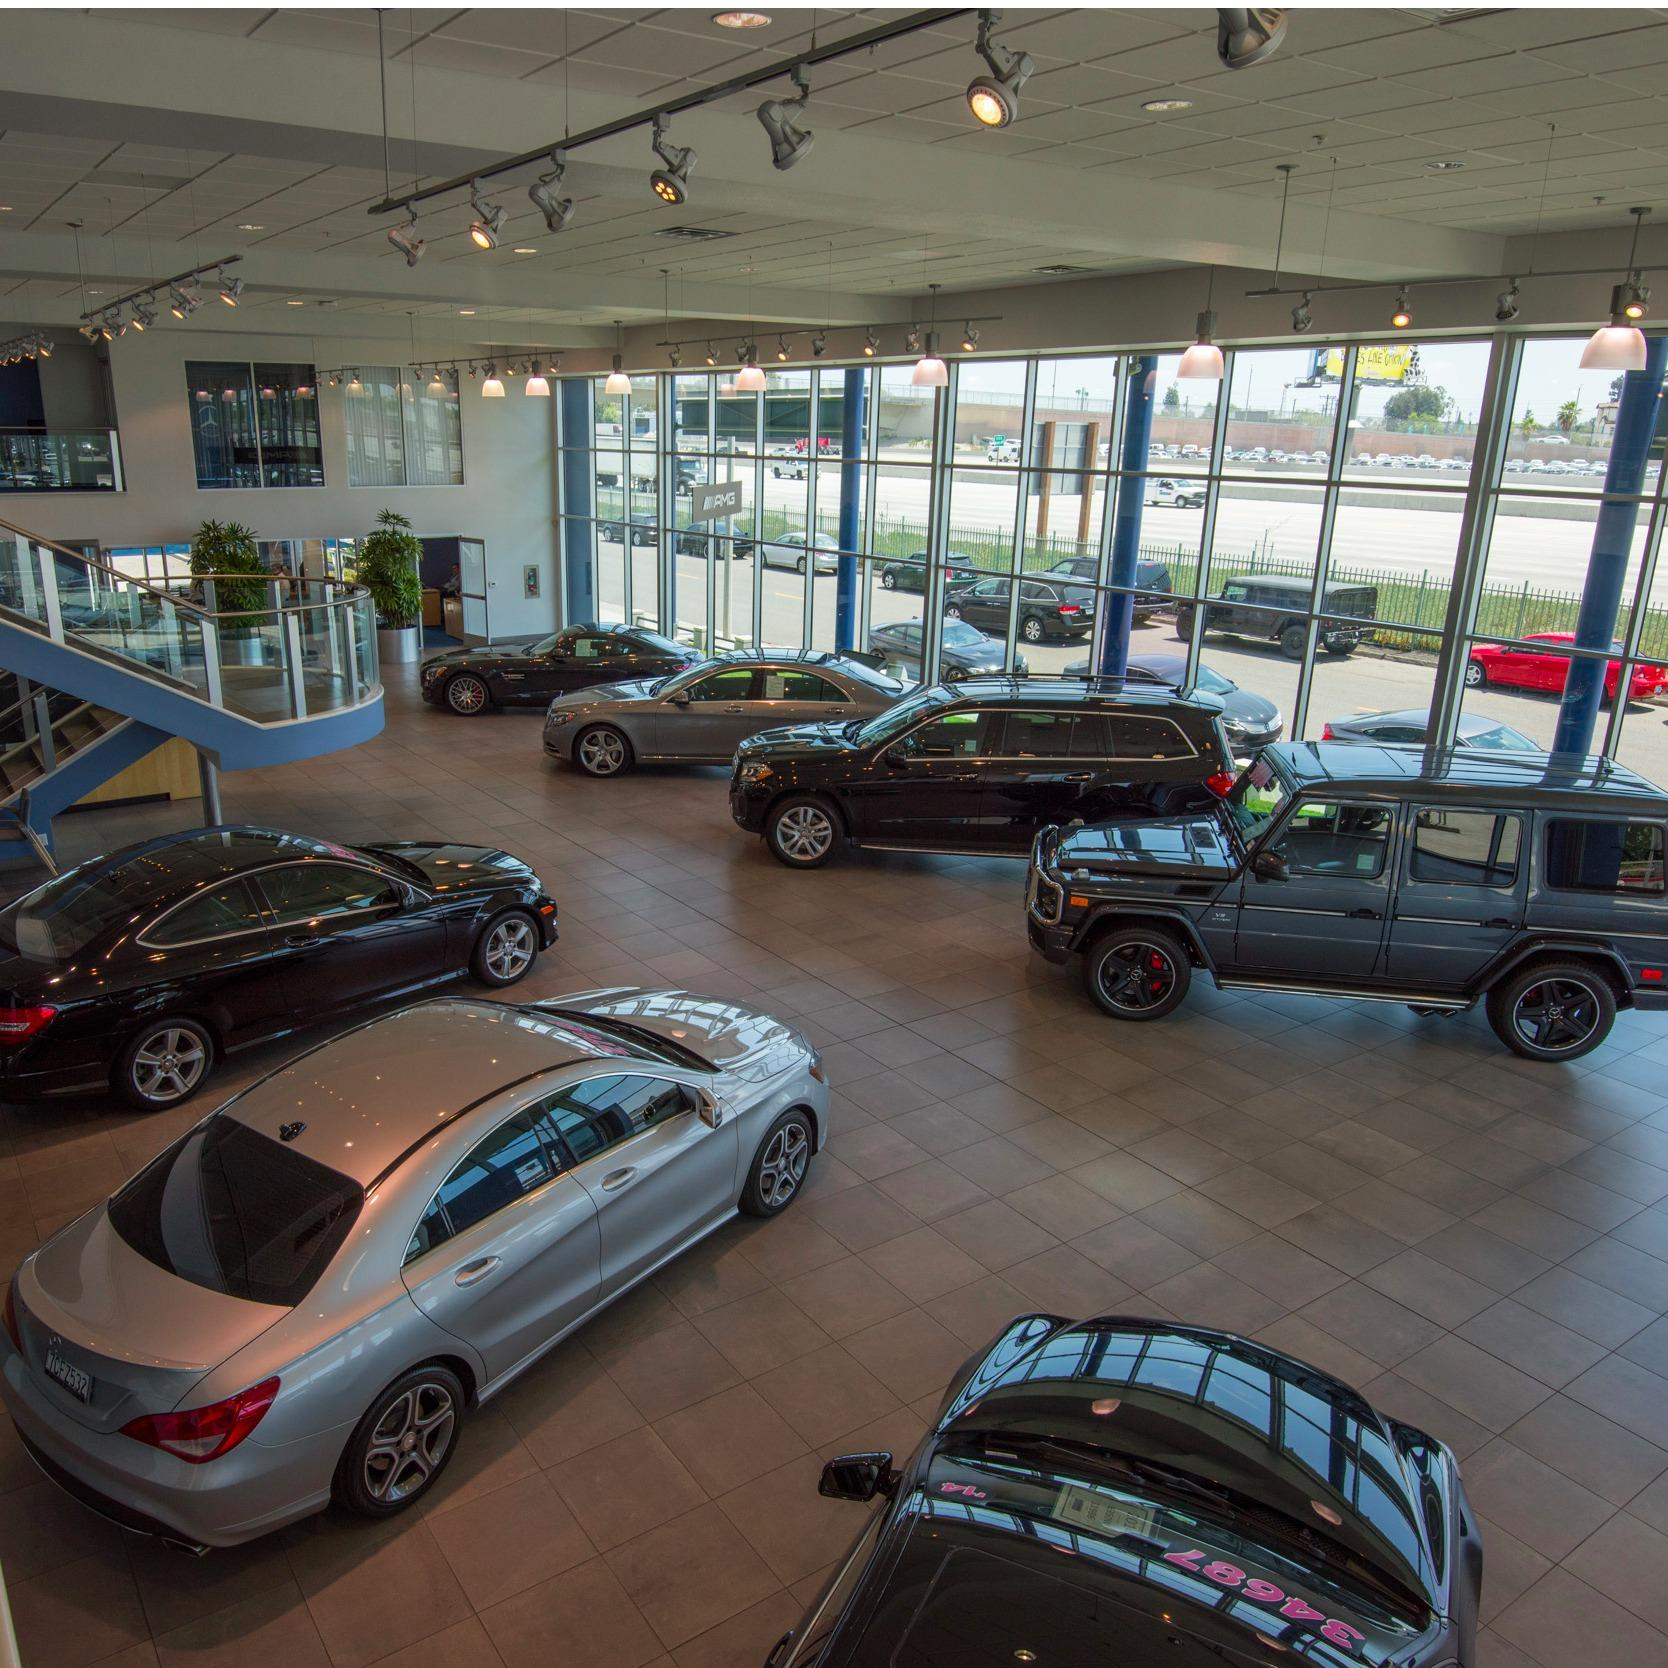 House of imports coupons near me in buena park 8coupons for Mercedes benz auto repair near me